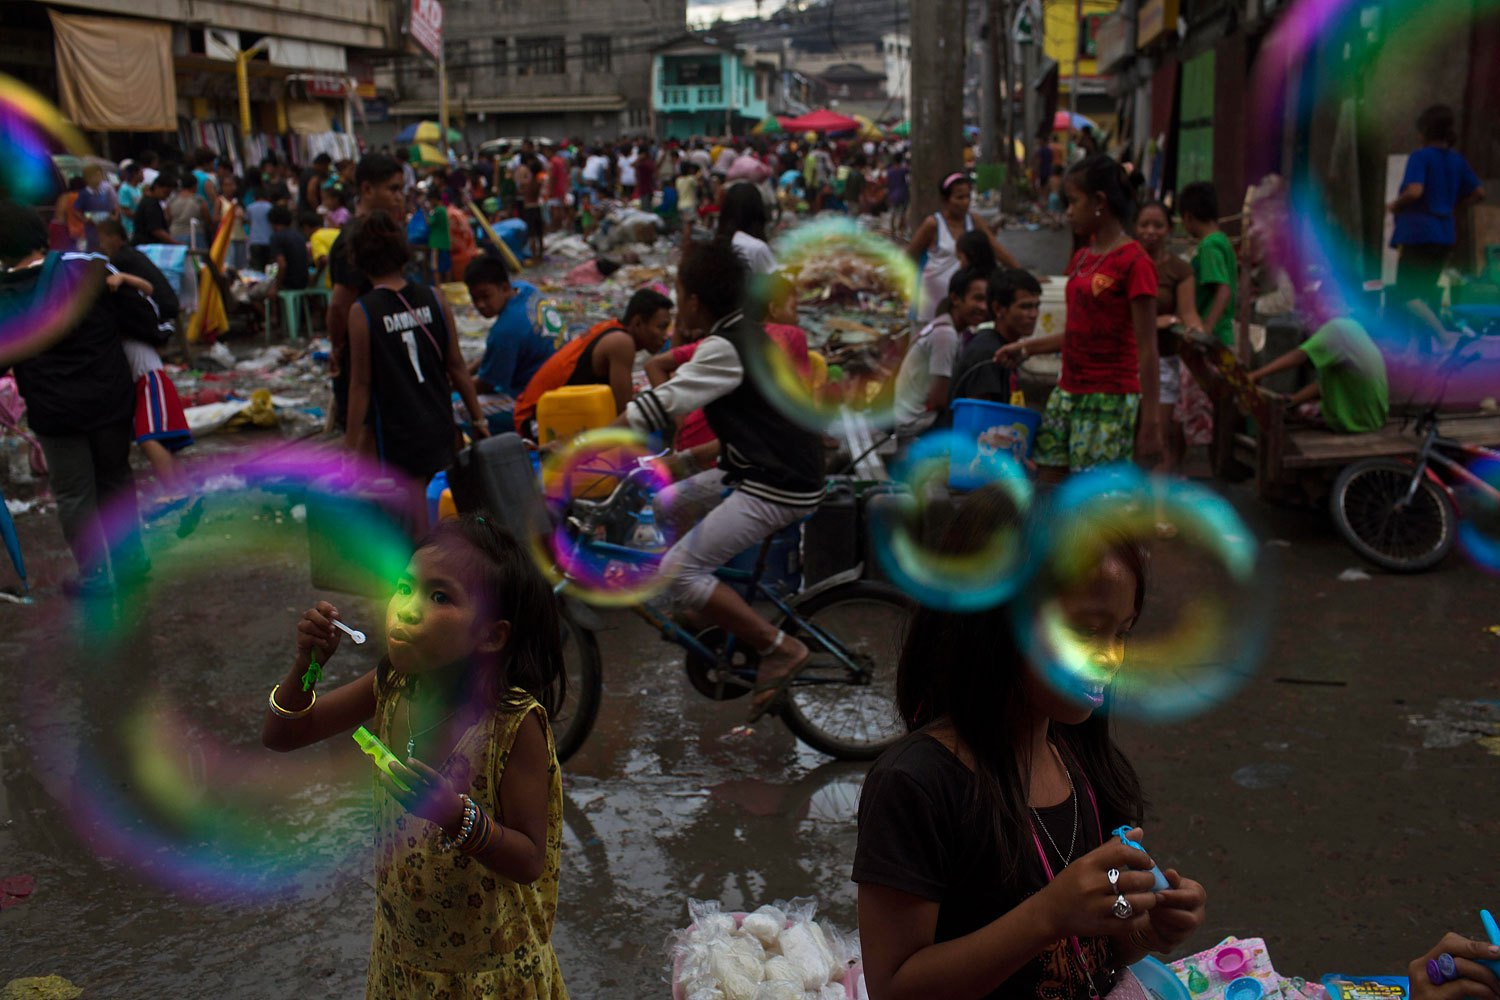 Children who survived Typhoon Haiyan blow bubbles in the destroyed market of Tacloban, Philippines, November 20, 2013.